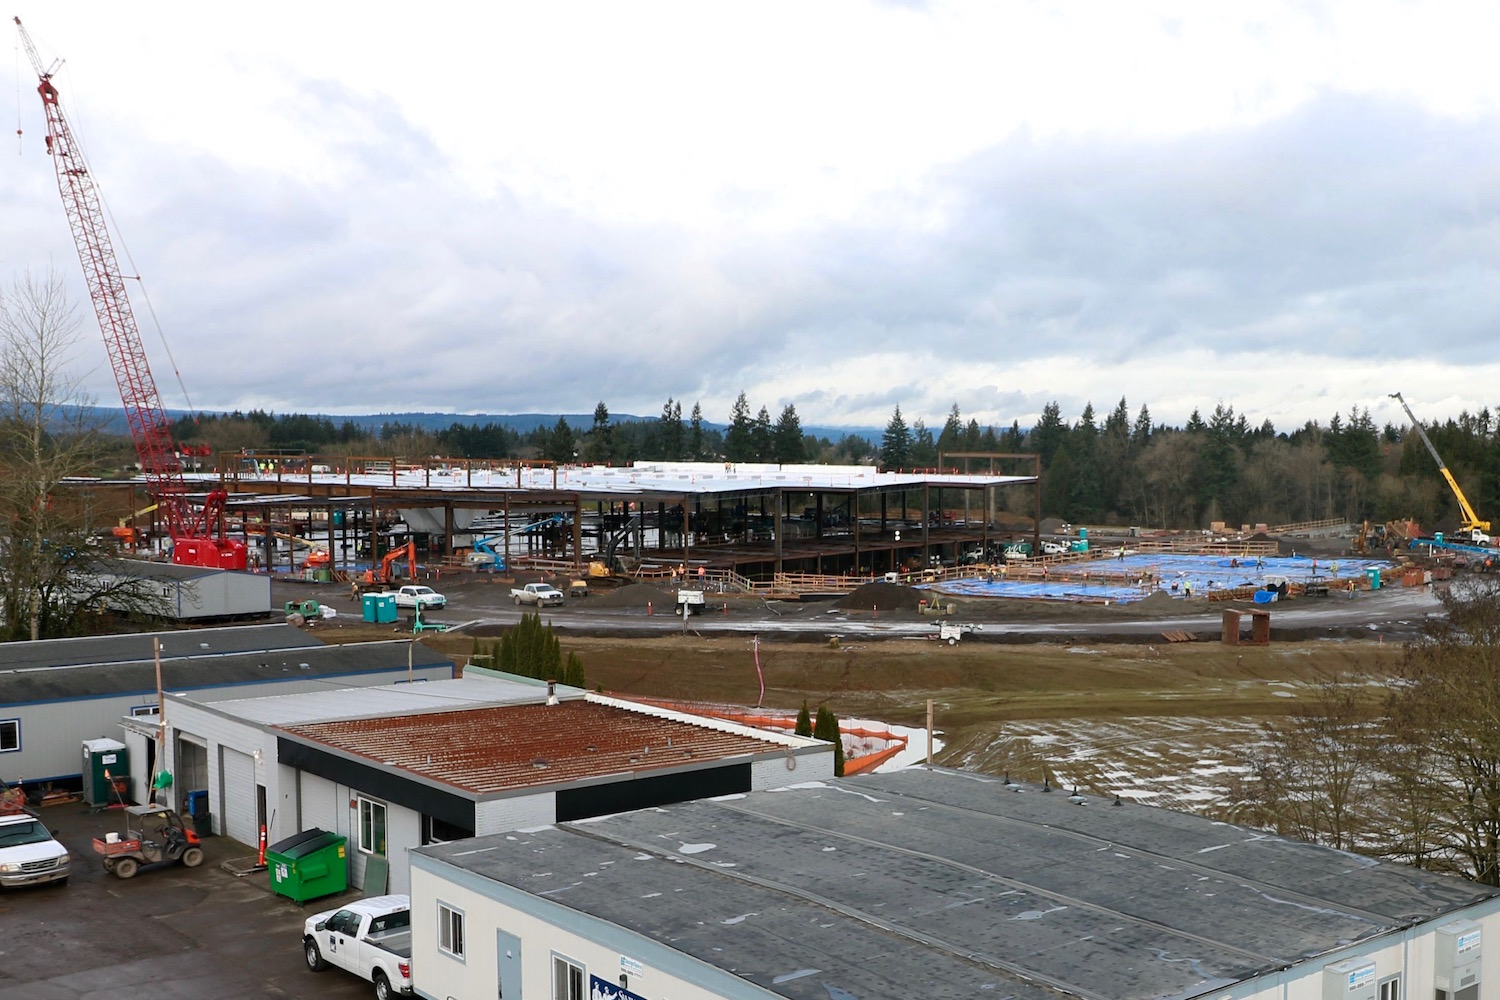 Cowlitz Tribe celebrates start of construction on $500M casino